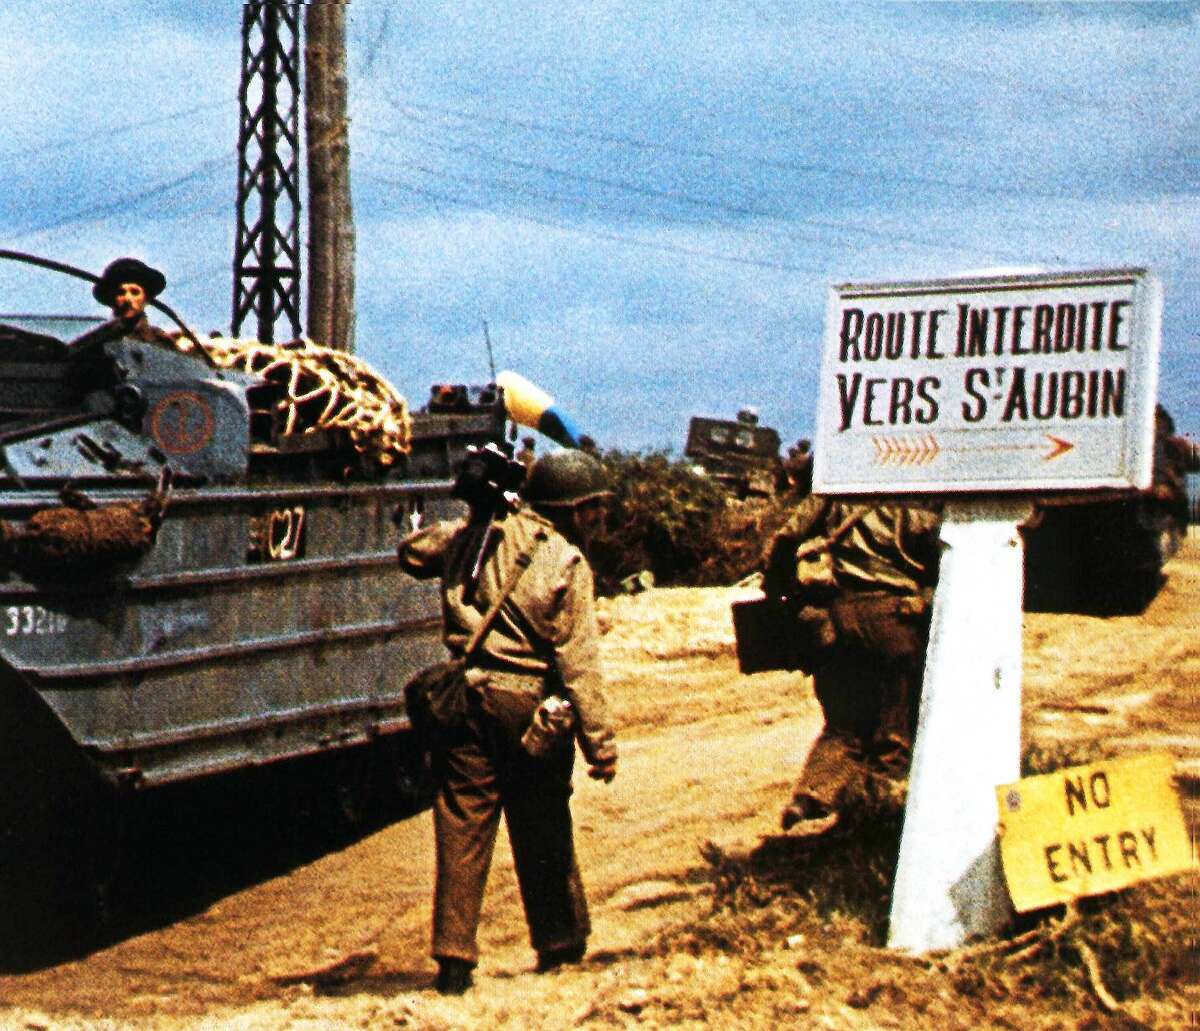 The road to Saint-Aubin-sur Mer has been closed due to fighting in the area. June 1944. Without much success the German Army was trying to prevent the Royal Marines from establishing contact with the British 3rd Division on Juno Beach. To the left is an amphibious vehicle (DUKW). Next to it is a camera man from the team of George Stevens. Normandy, France. (Photo by Galerie Bilderwelt/Getty Images)